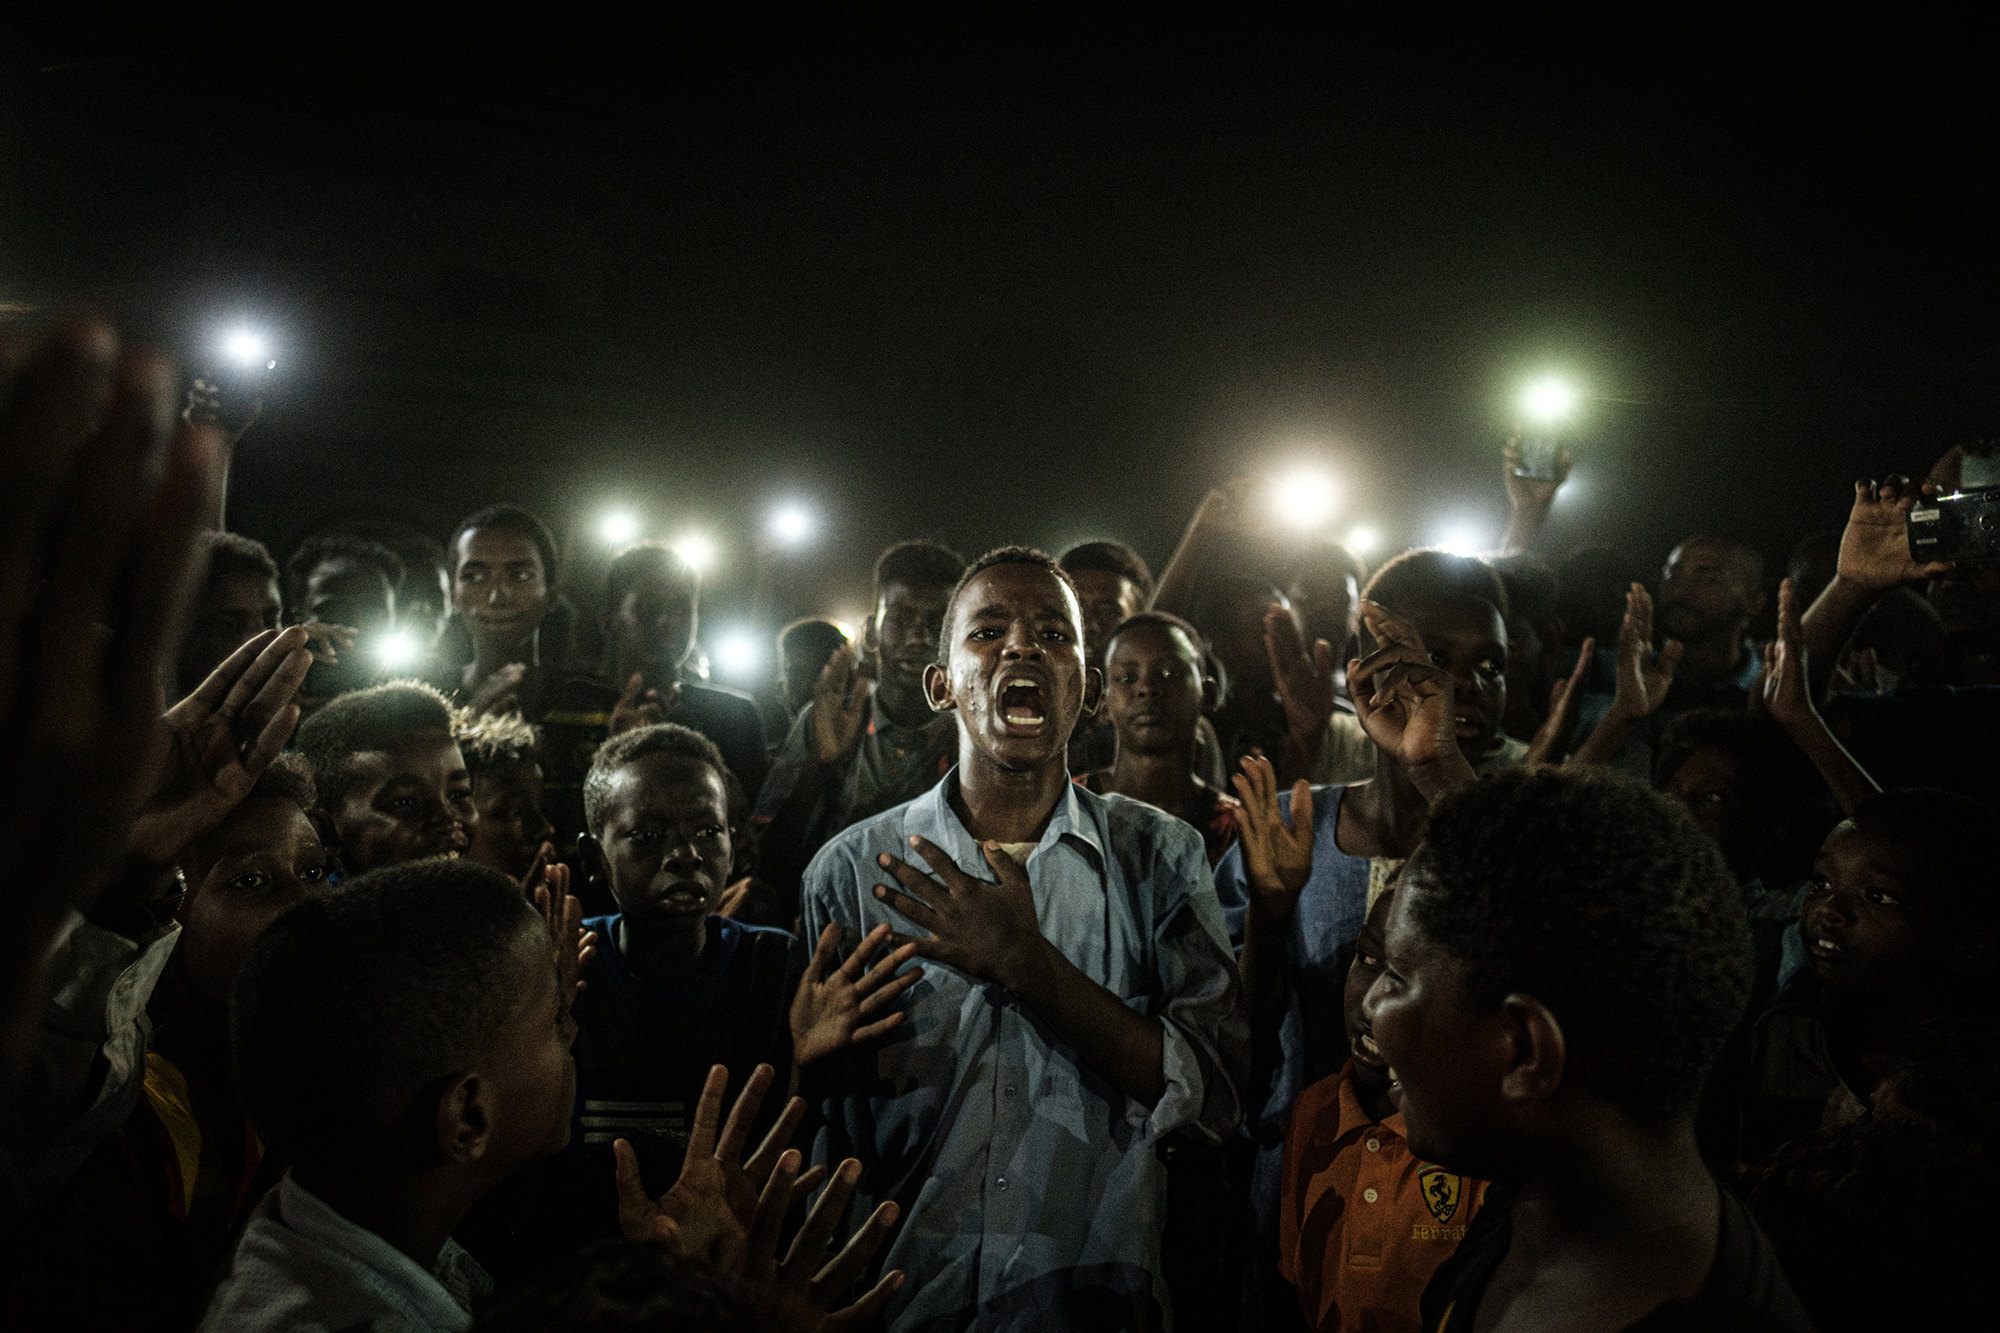 Caption: A young man, illuminated by mobile phones, recites protest poetry while demonstrators chant slogans calling for civilian rule, during a blackout in Khartoum, Sudan, on 19 June 2019.Story: Protests in Sudan began in December 2018 and spread rapidly throughout the country. By April 2019, protesters were staging a sit-in close to army headquarters in the capital Khartoum, and demanding an end to the 30-year rule of dictator Omar al-Bashir. On 11 April, al-Bashir was removed from office in a military coup, and a transitional military government was established. Protests continued, calling for power to be handed to civilian groups. On 3 June, government forces opened fire on unarmed protesters. Scores of people were killed and many more subject to further violence. Three days later the African Union suspended Sudan, in the midst of widespread international condemnation of the attack. The authorities sought to defuse protests by imposing blackouts, and shutting down the internet. Protesters communicated by text message, word of mouth and using megaphones, and resistance to military rule continued. Despite another severe crackdown on 30 June, the pro-democracy movement was eventually successful in signing a power-sharing agreement with the military, on 17 August.